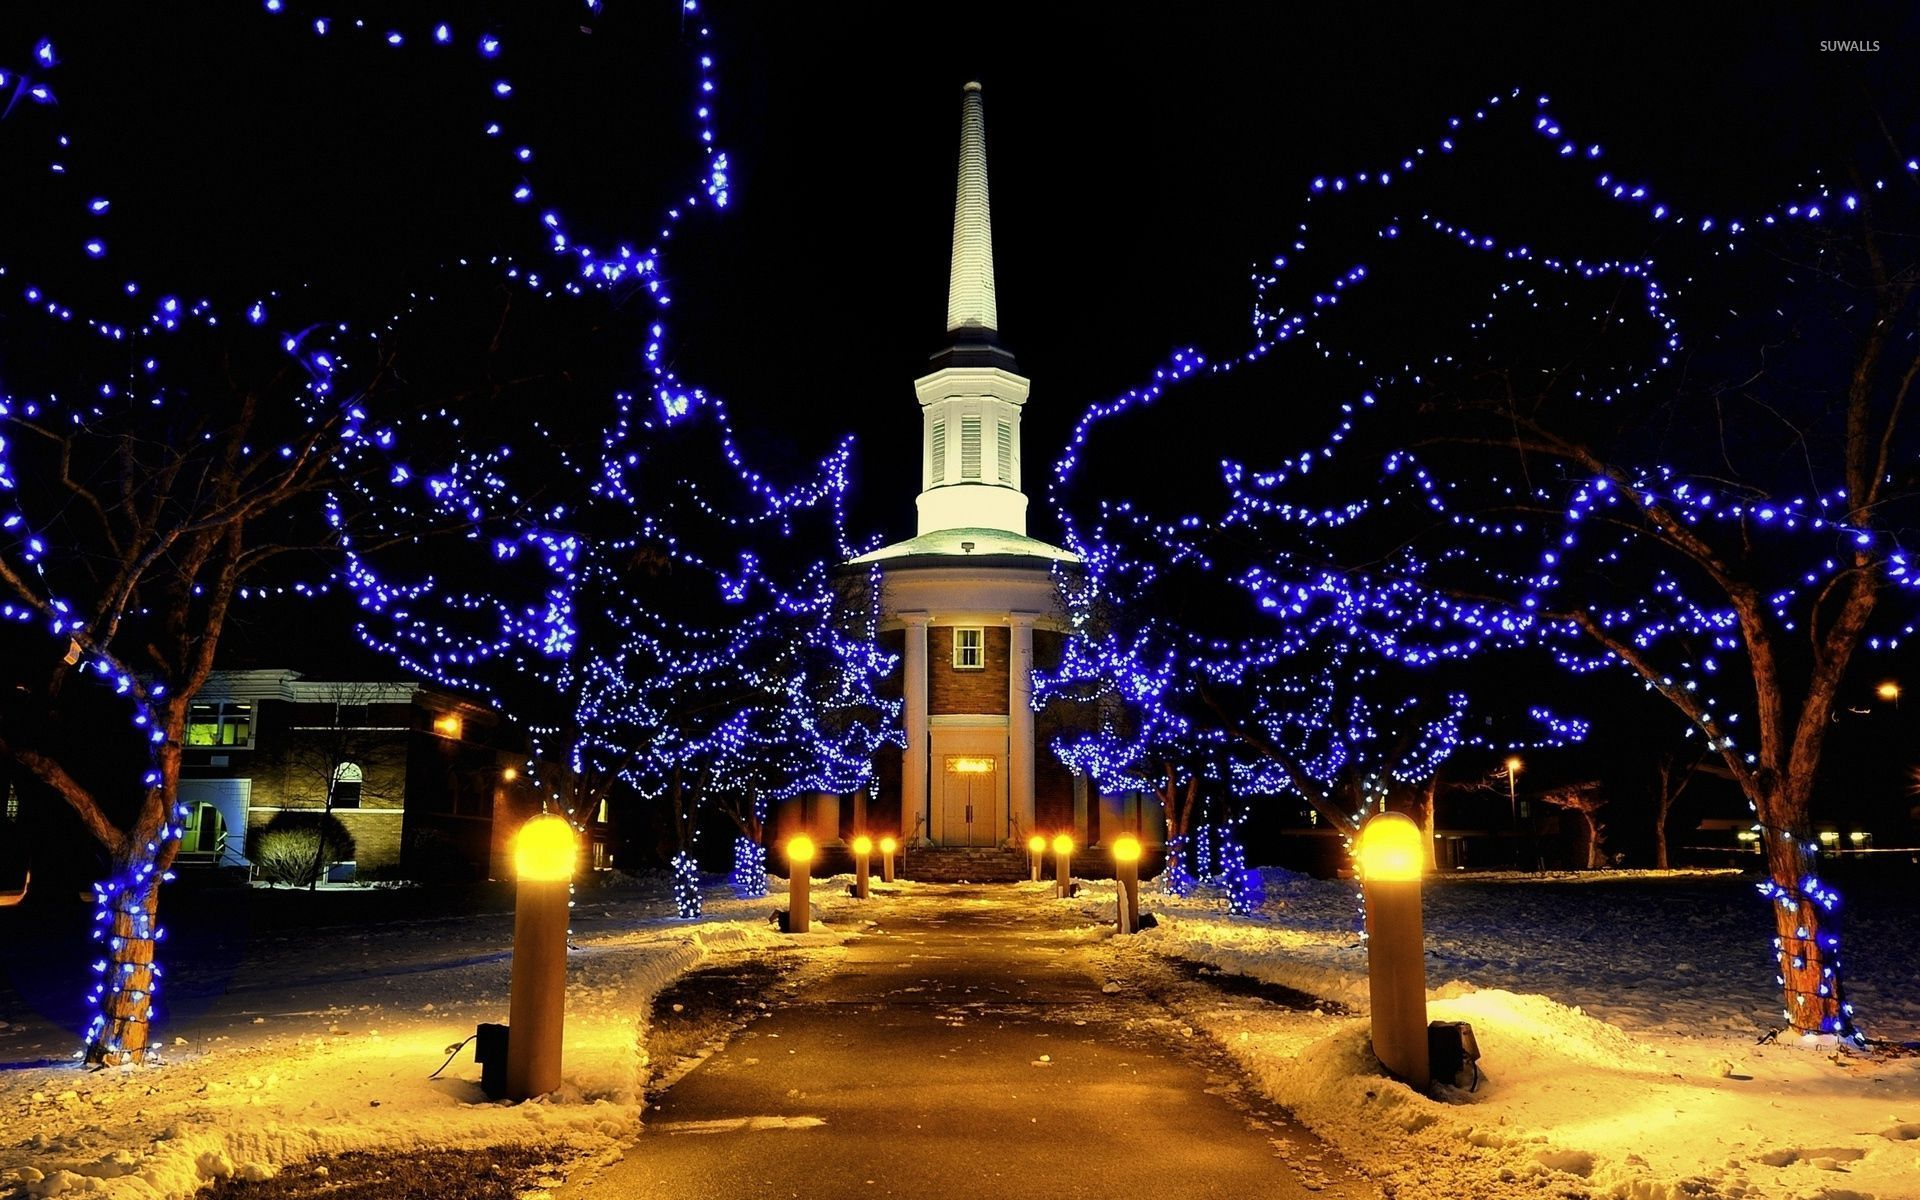 Christmas Tree Wallpapers With Quotes Golden Lit Path To A Chapel Through The Blue Lit Trees